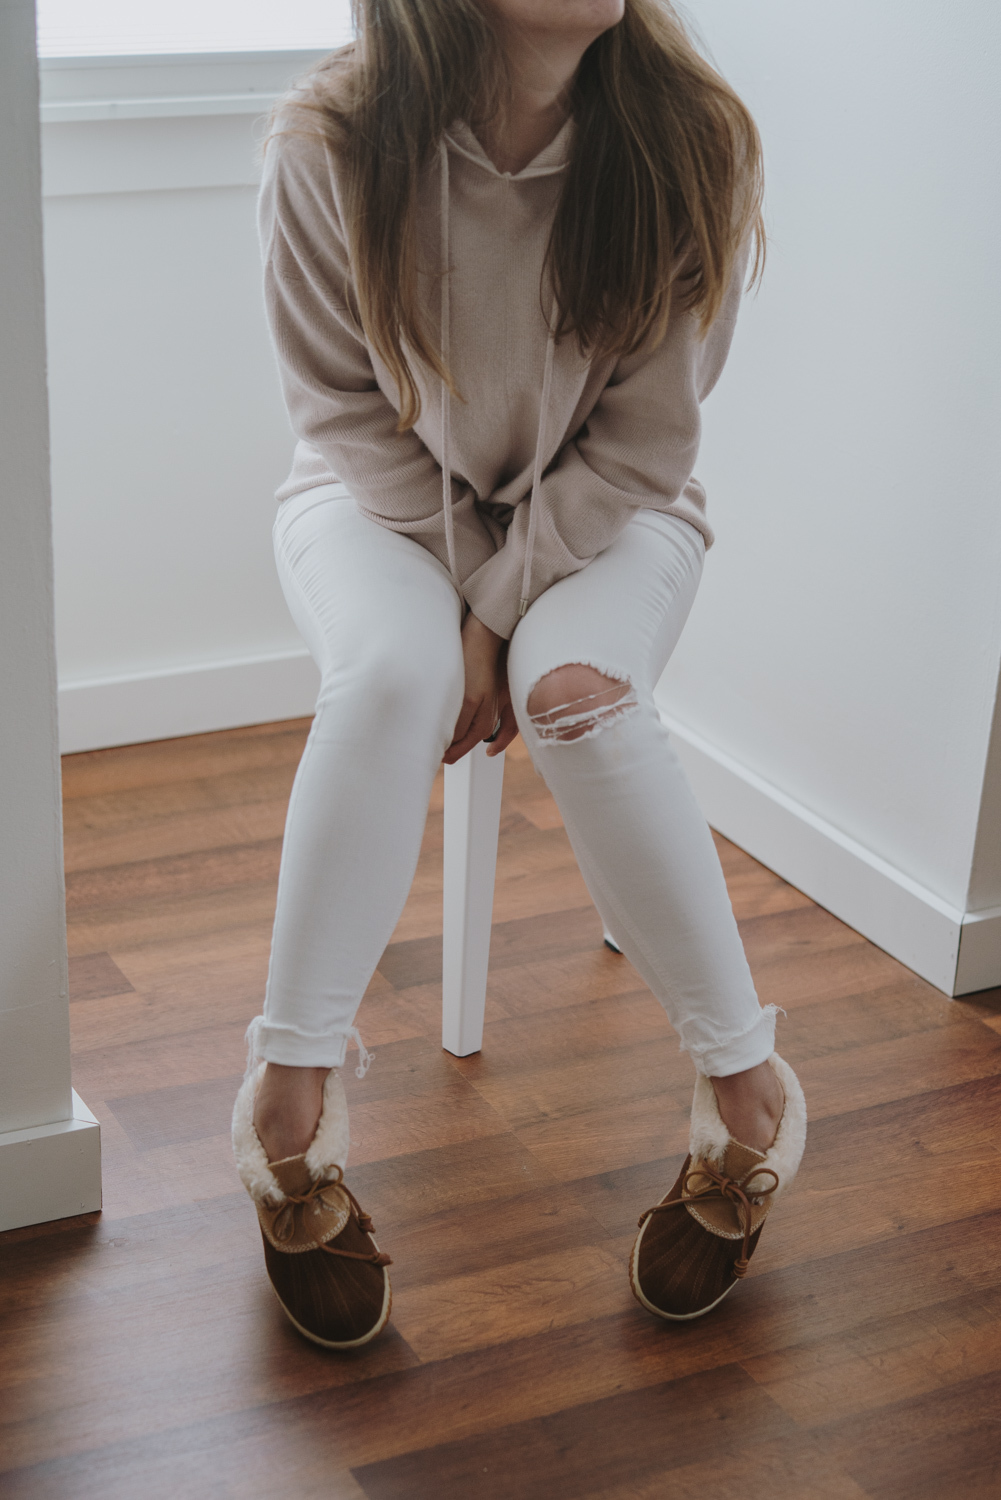 Sperrry Shoes 5